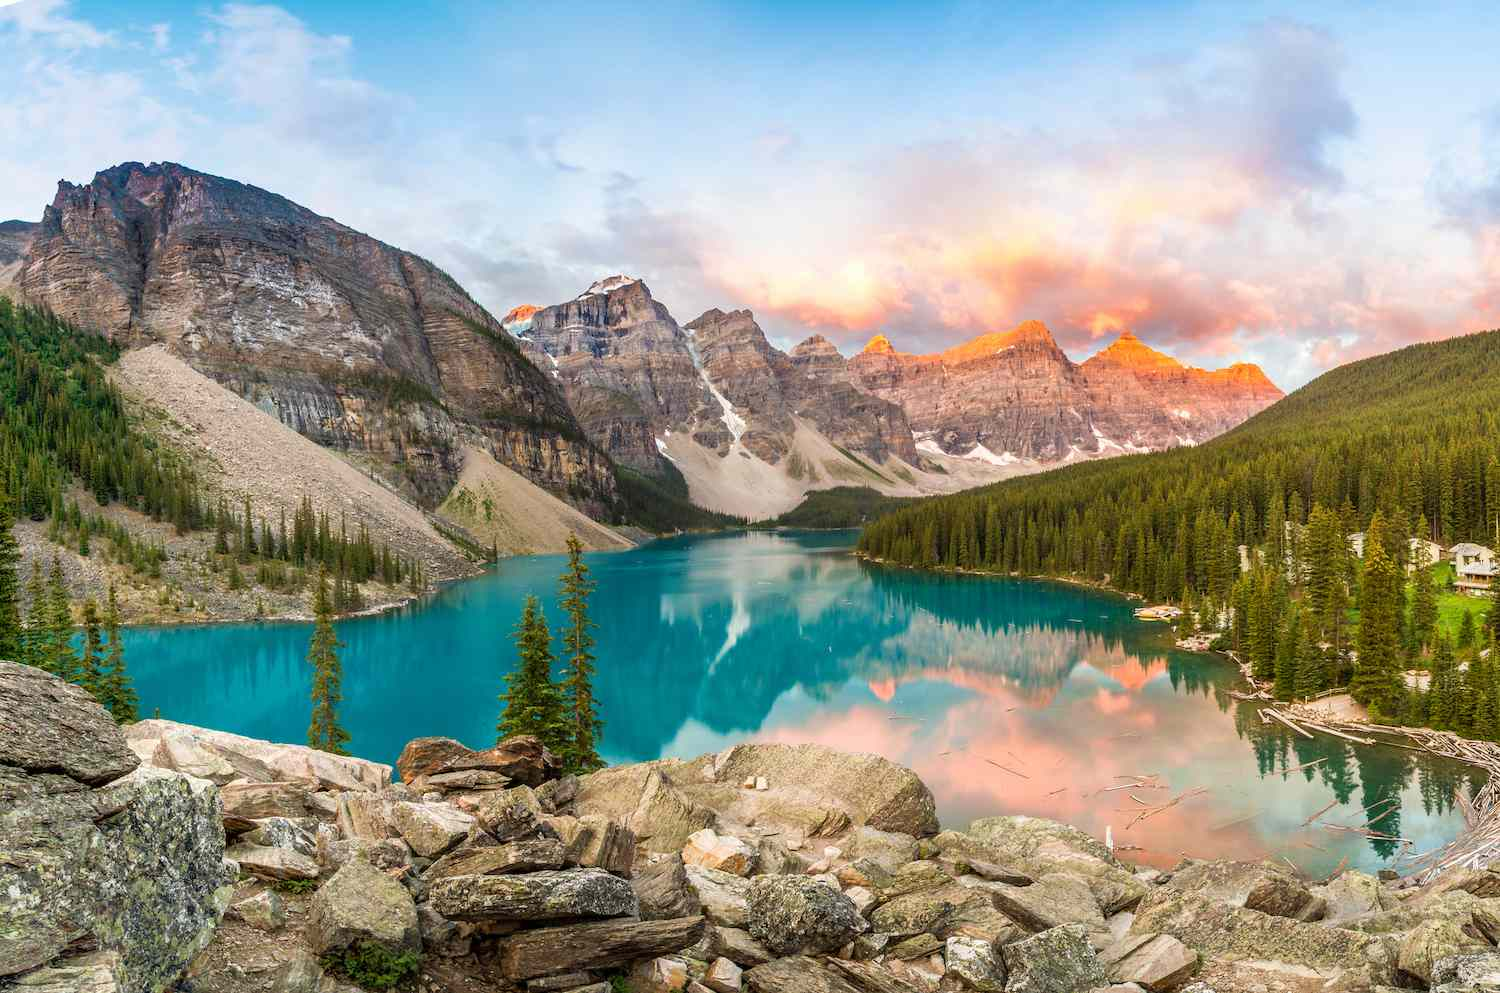 The sun rises above the mountains at Banff National Park